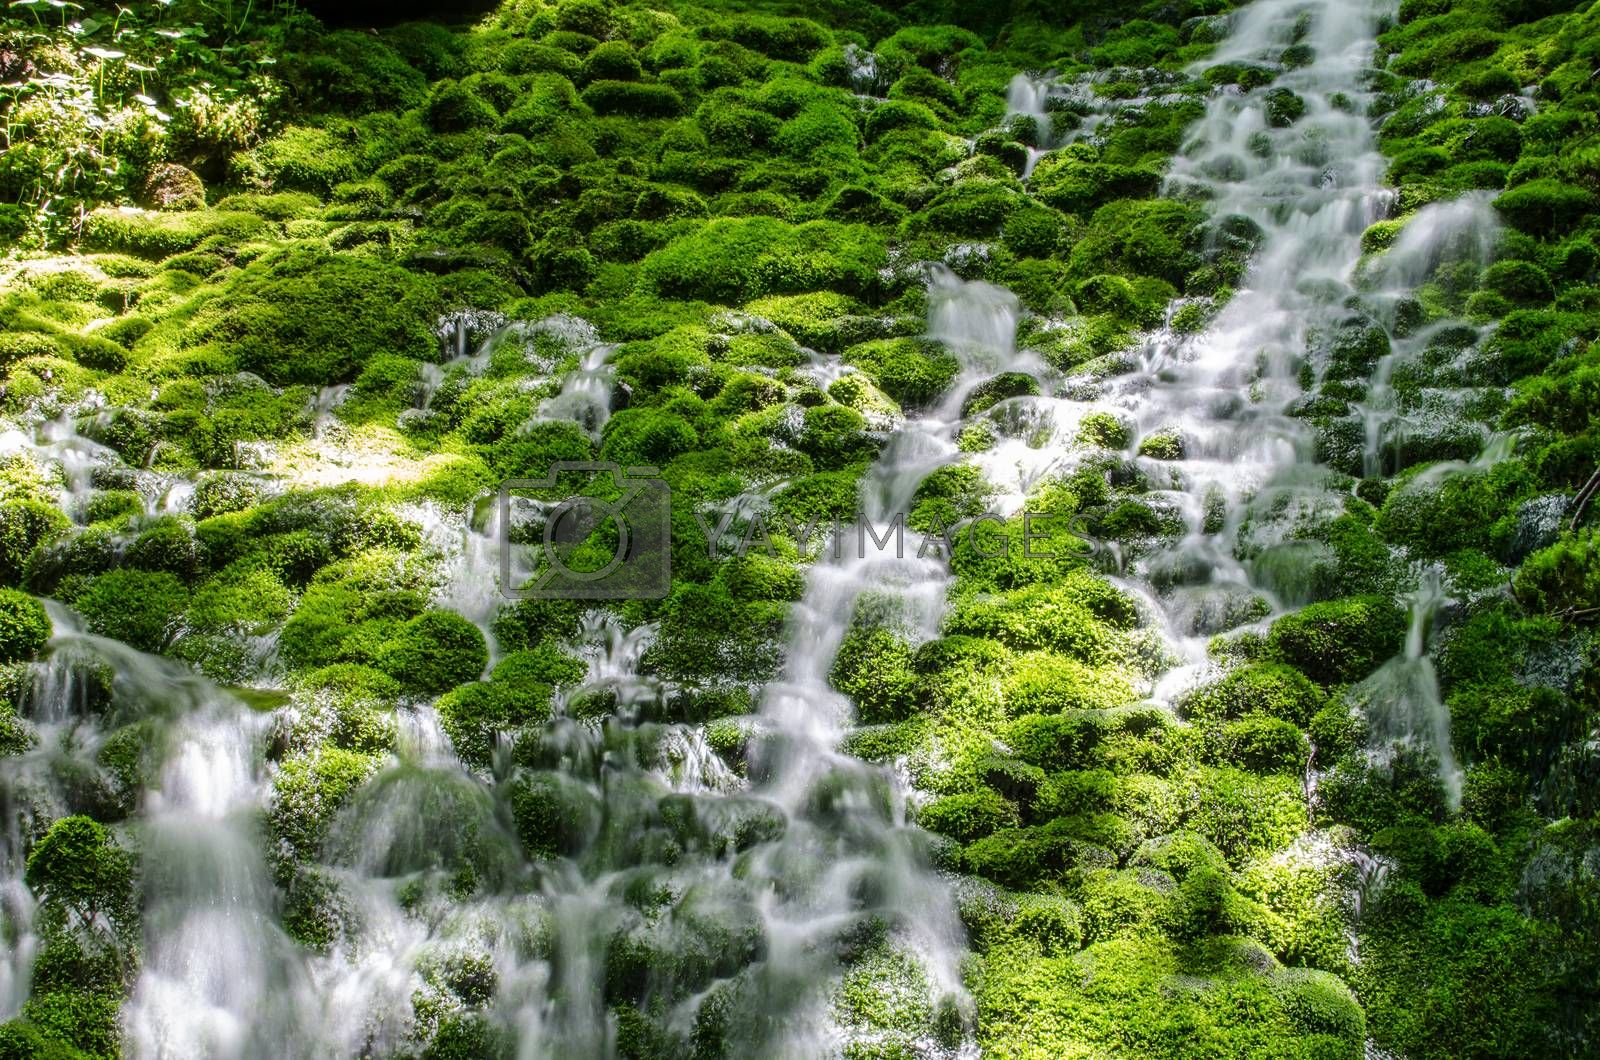 Royalty free image of dense moss in the water by thomaseder